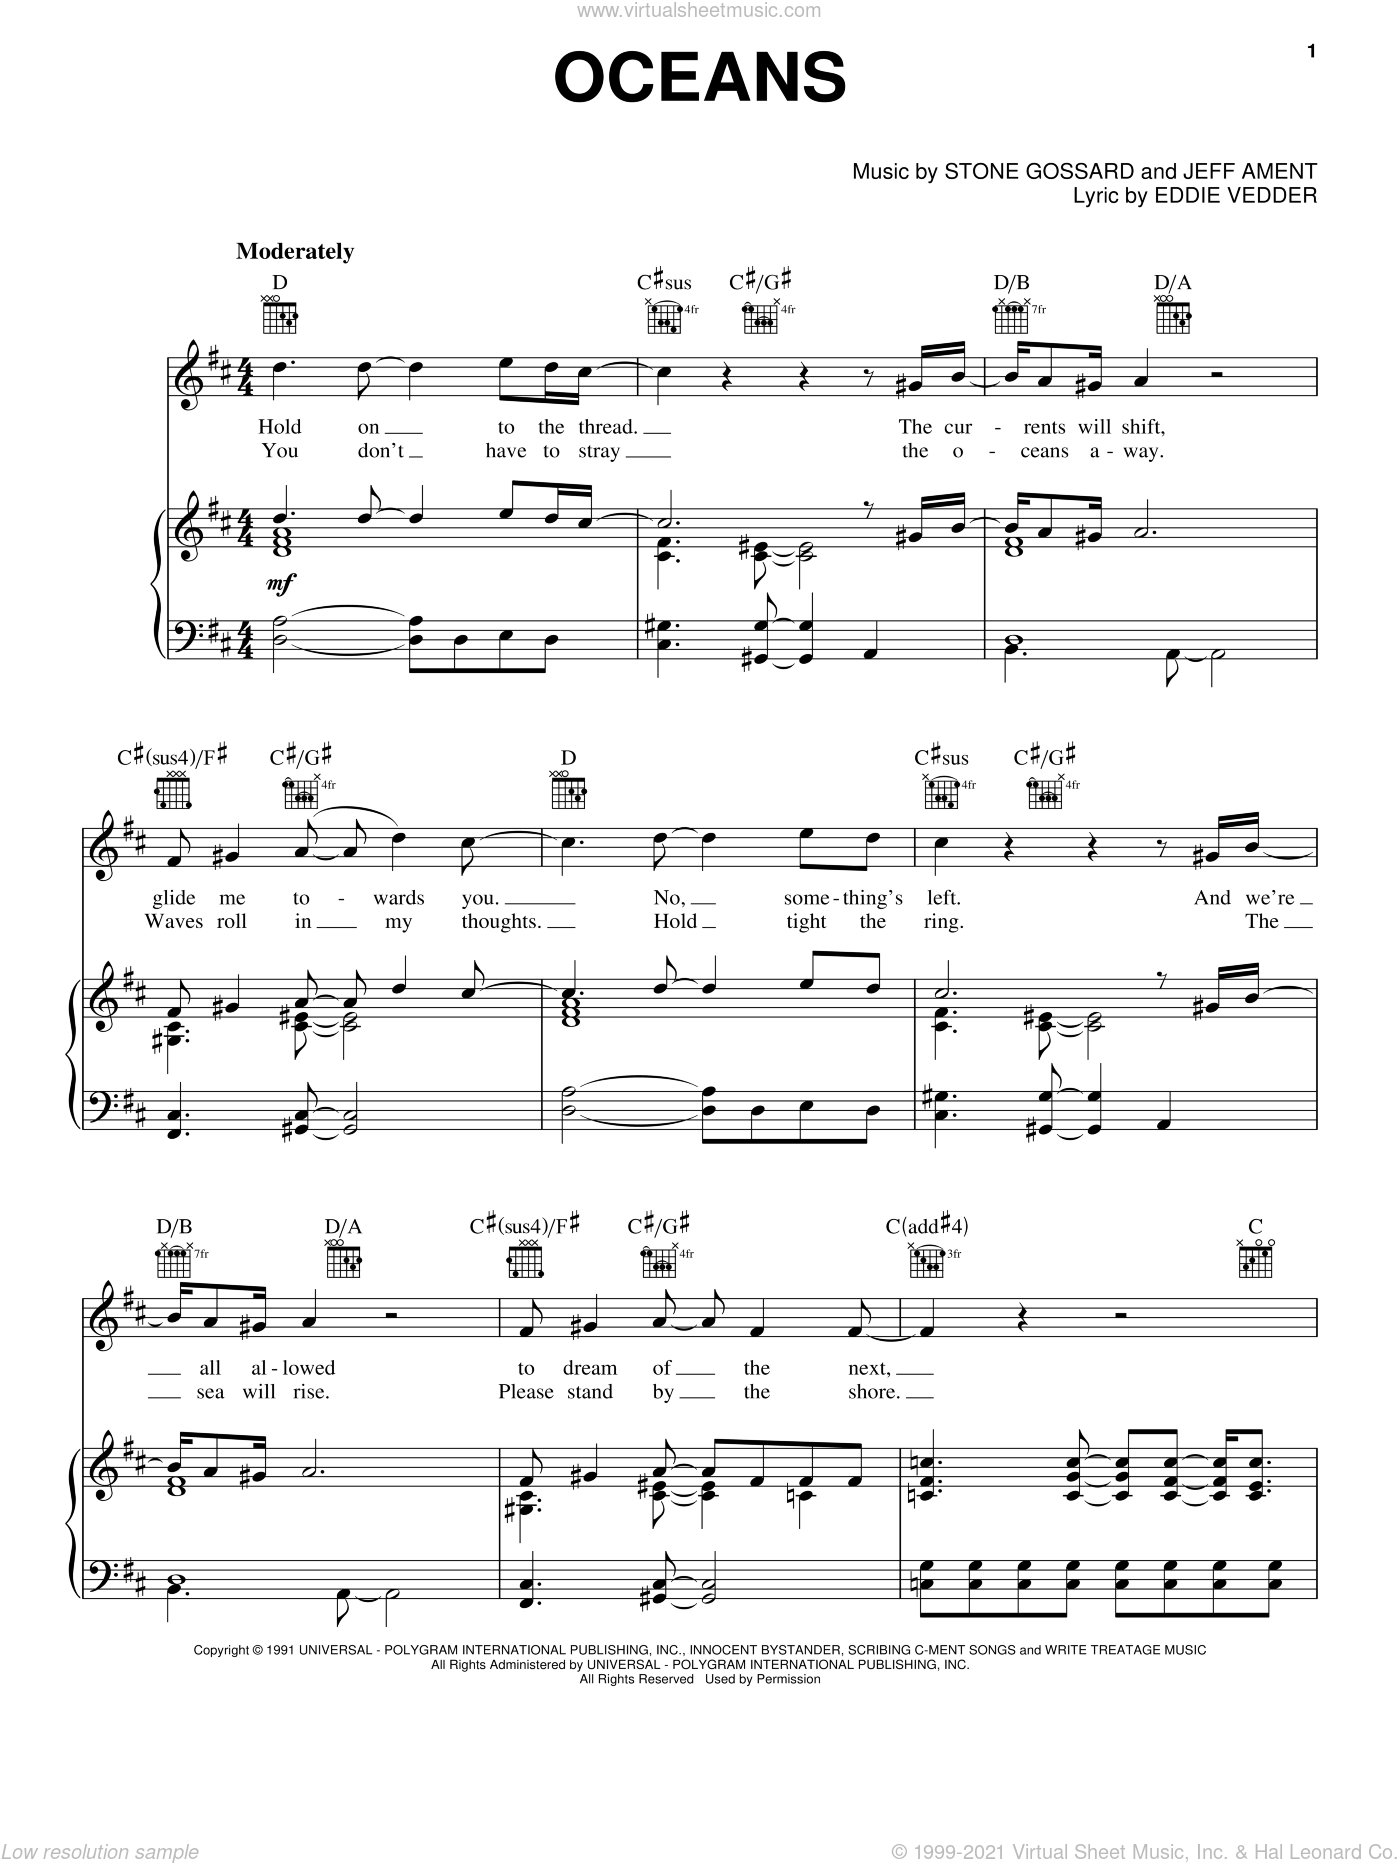 Oceans sheet music for voice, piano or guitar by Pearl Jam, Eddie Vedder, Jeff Ament and Stone Gossard, intermediate skill level